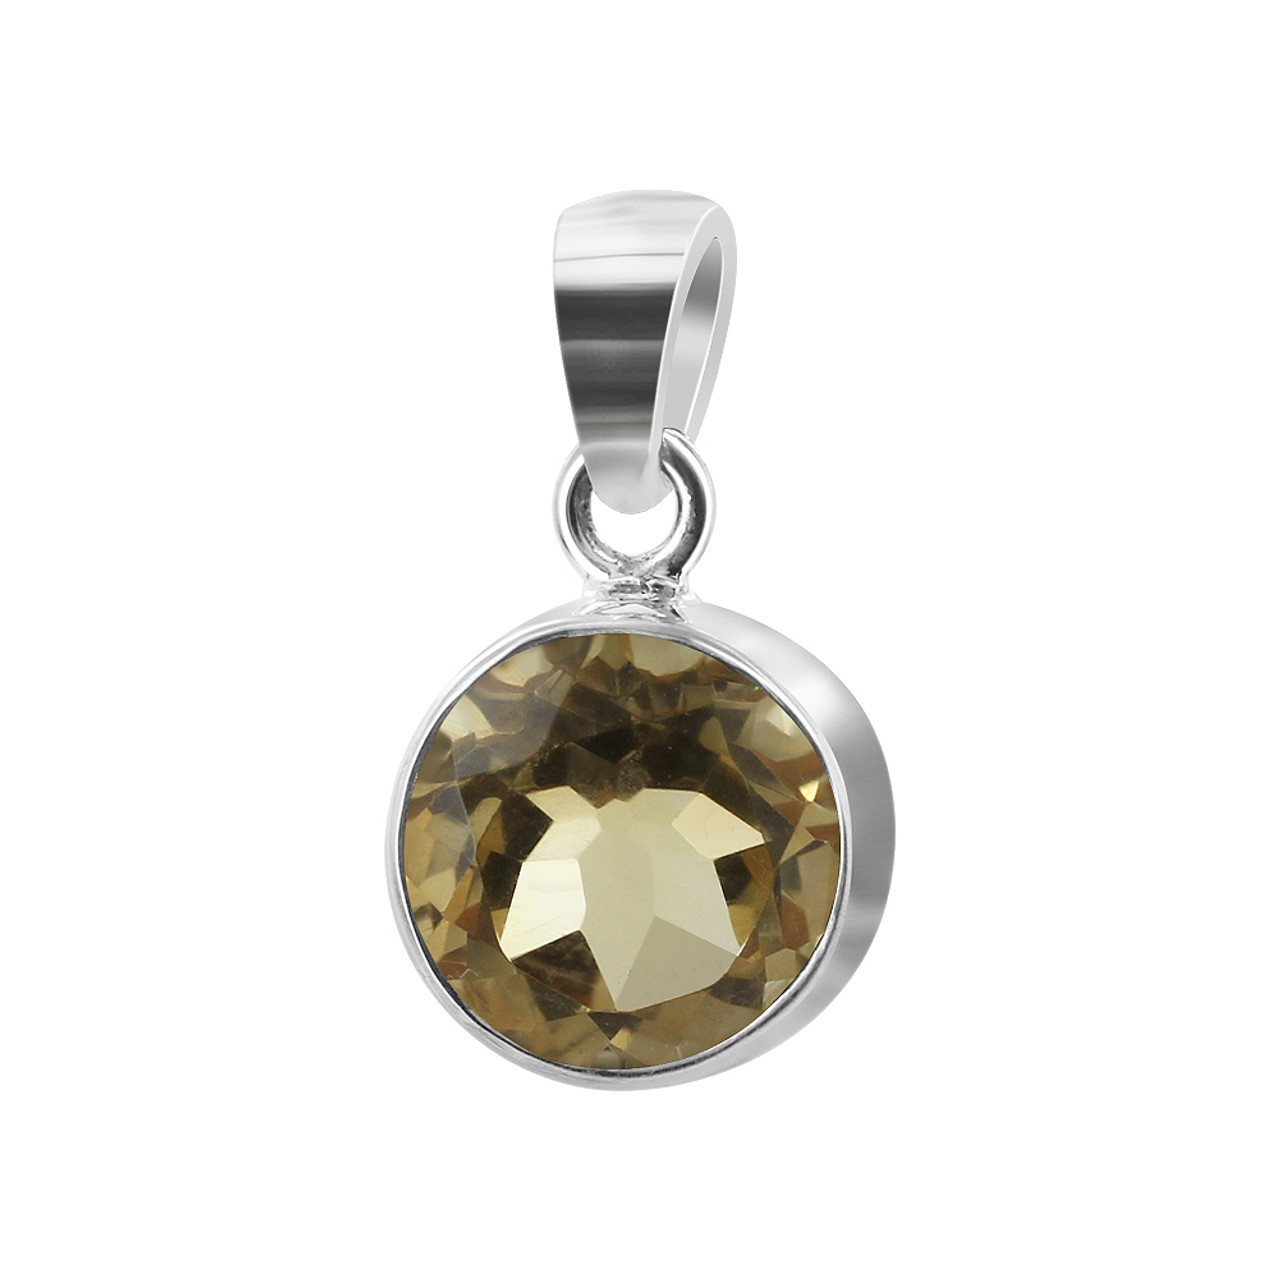 Sterling Silver Citrine Gemstone Pendant